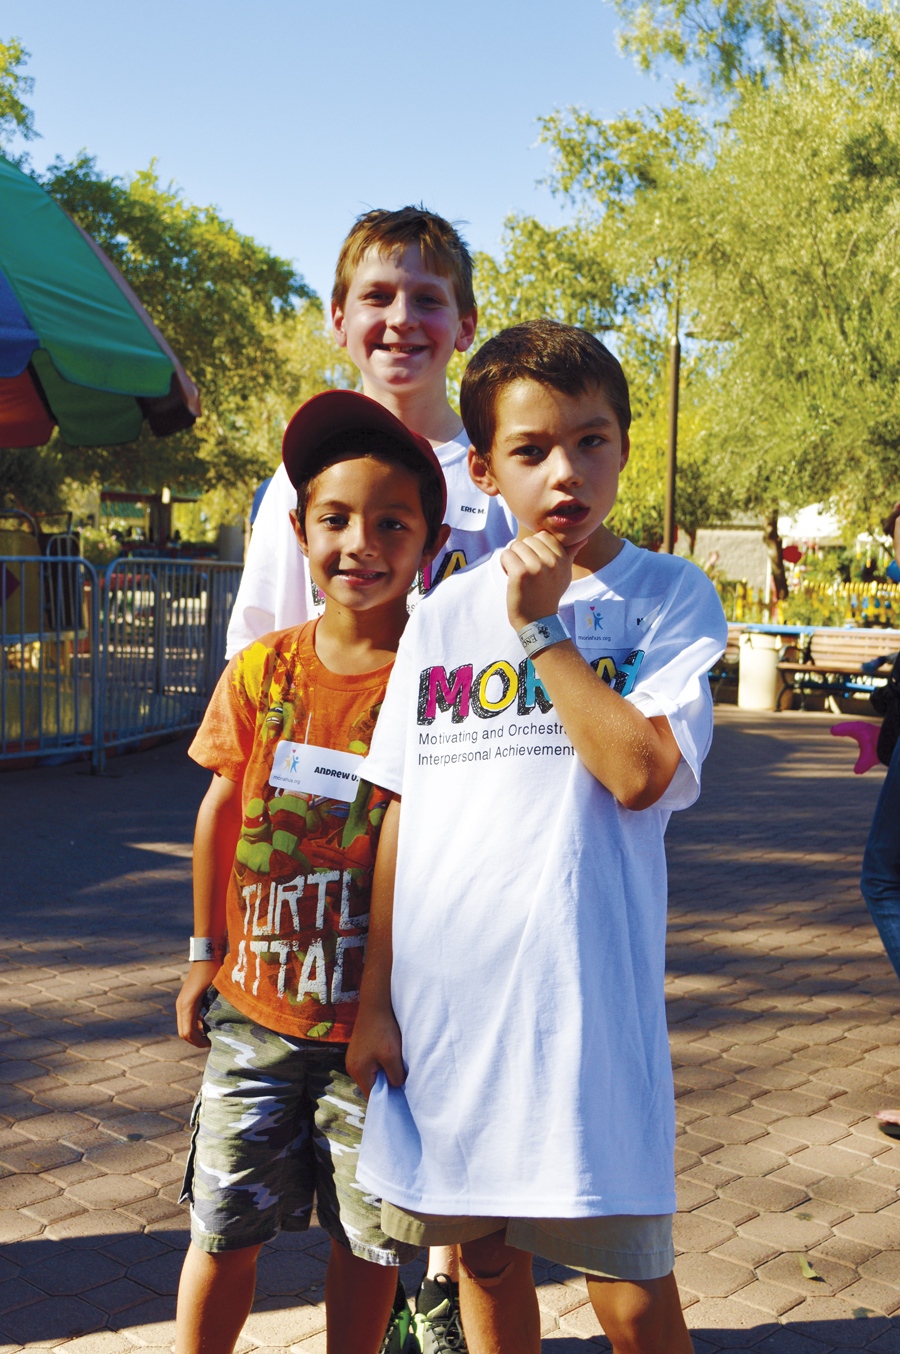 Right: Eric Meyer (background) spent the day with Noah Uhlenhake (right) and his brother Andrew.